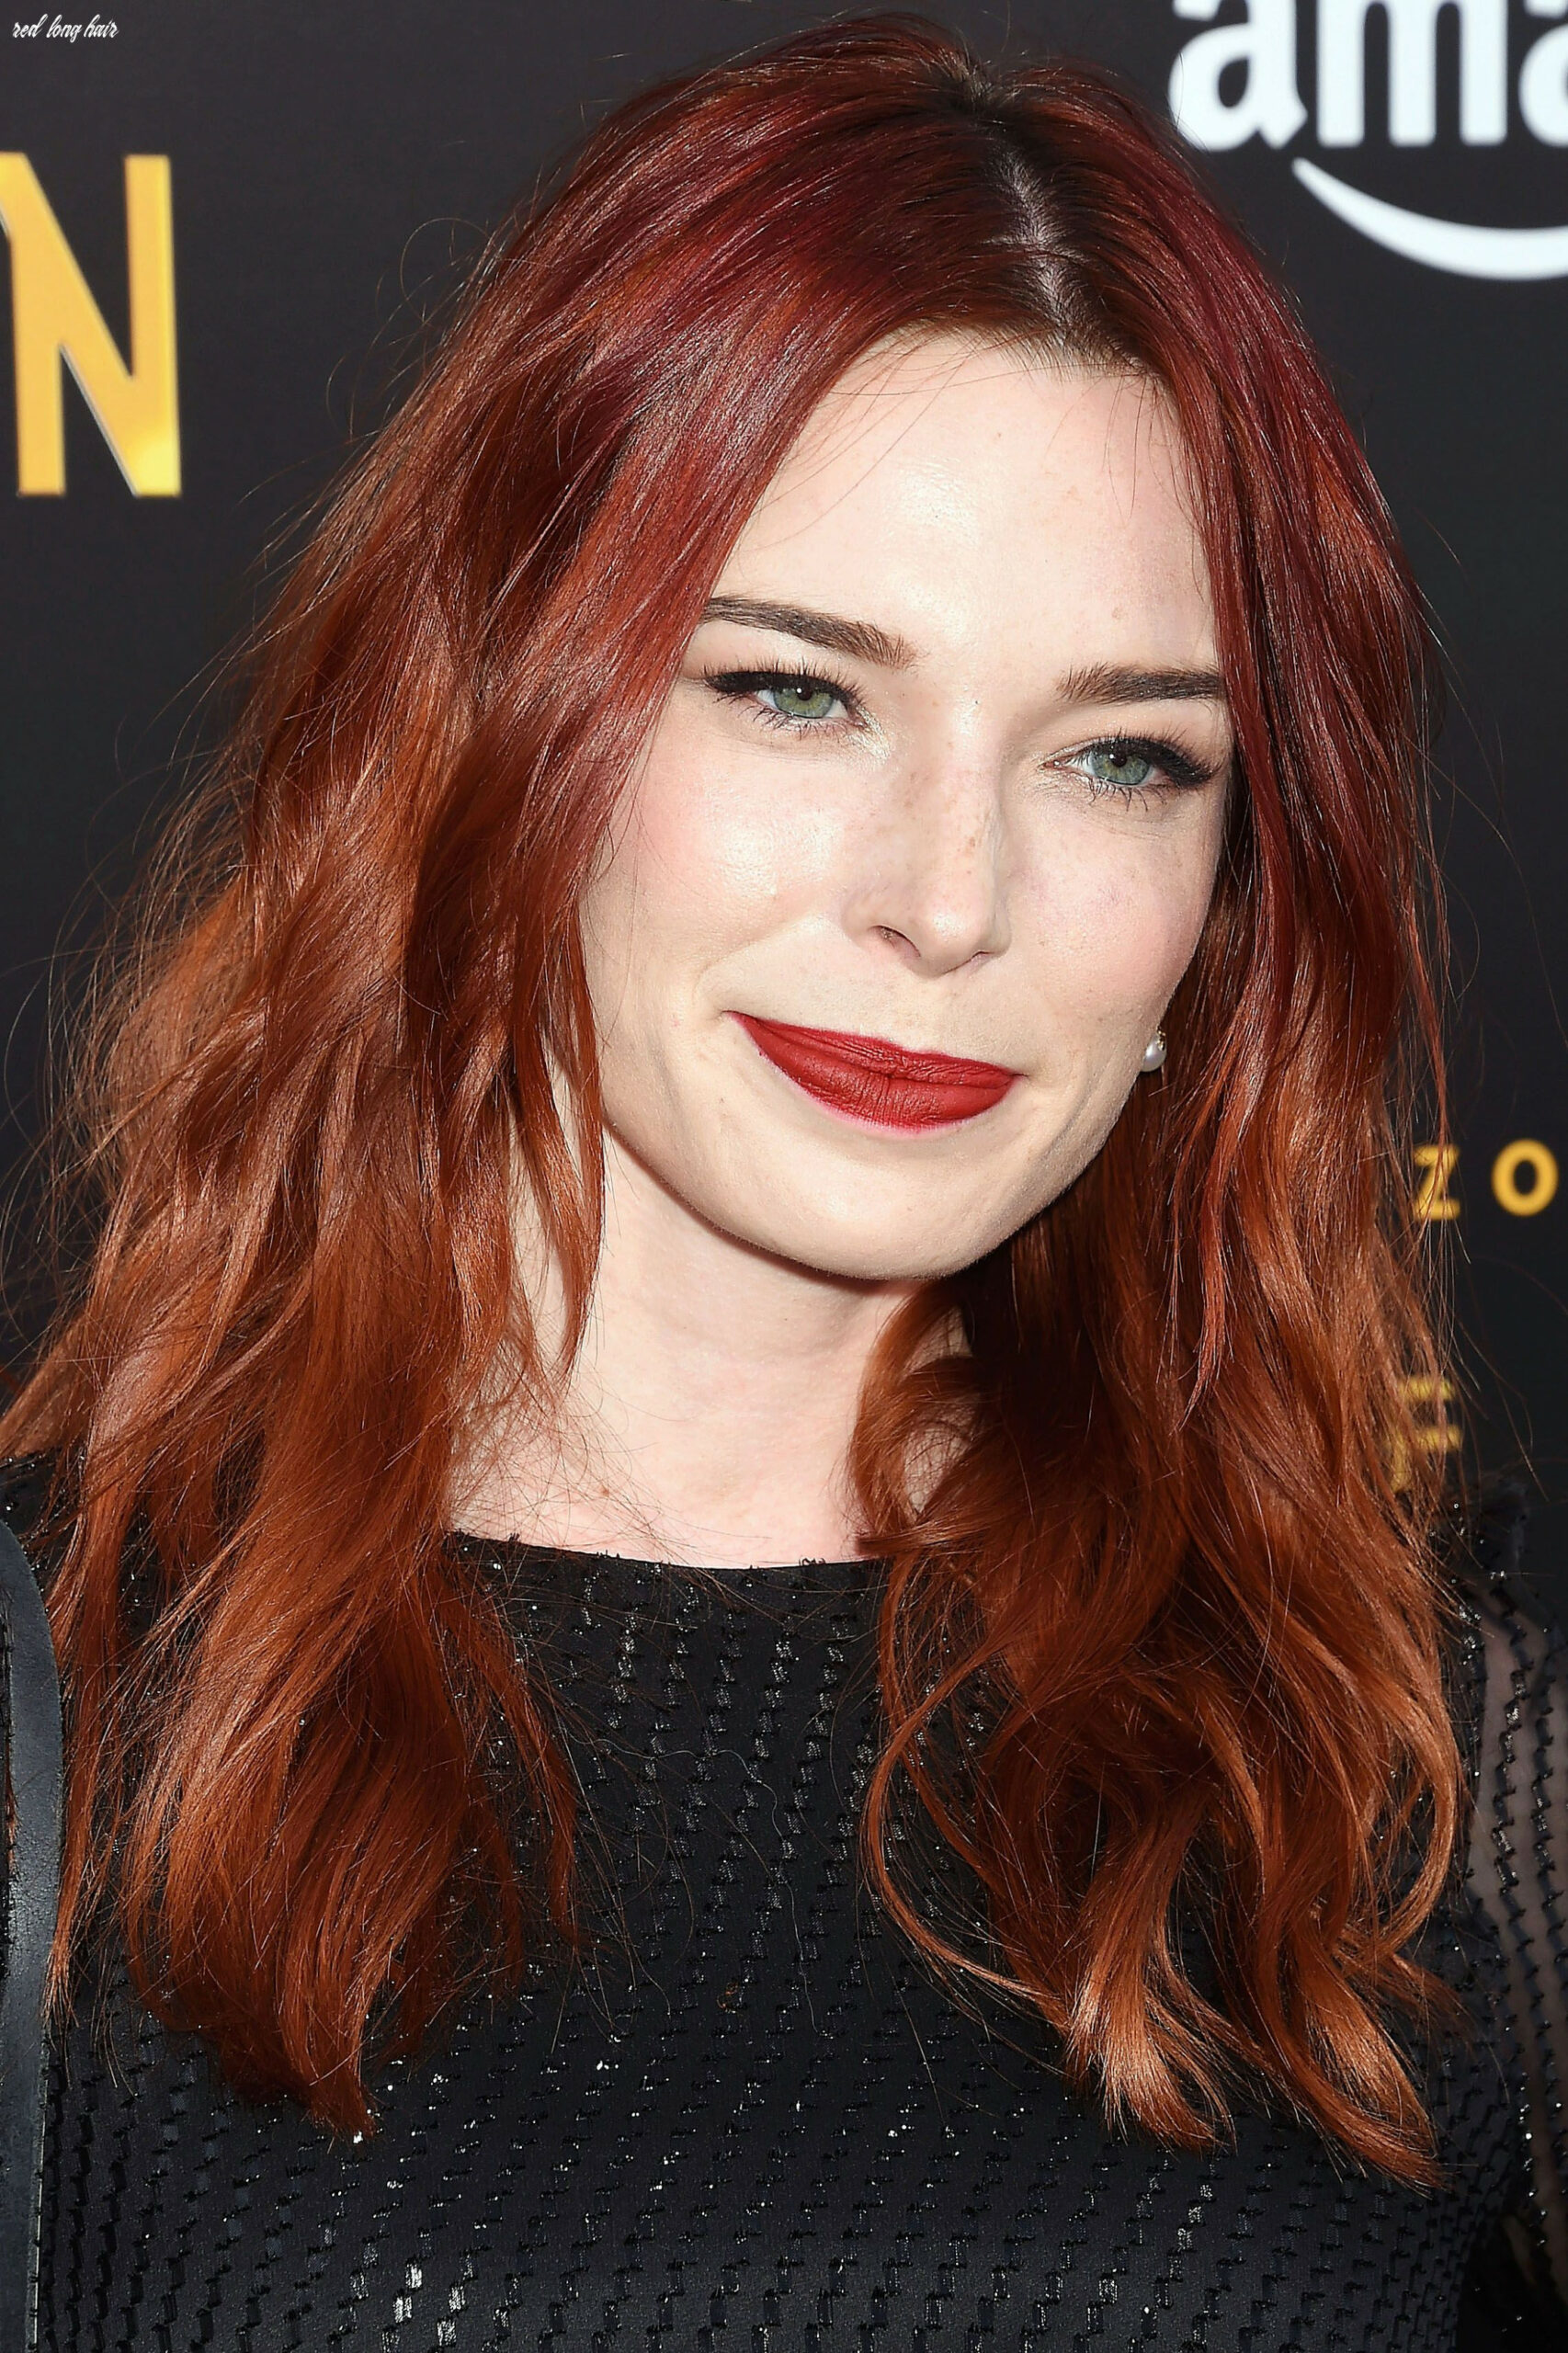 10 Red Hair Color Shade Ideas for 10 - Famous Redhead Celebrities